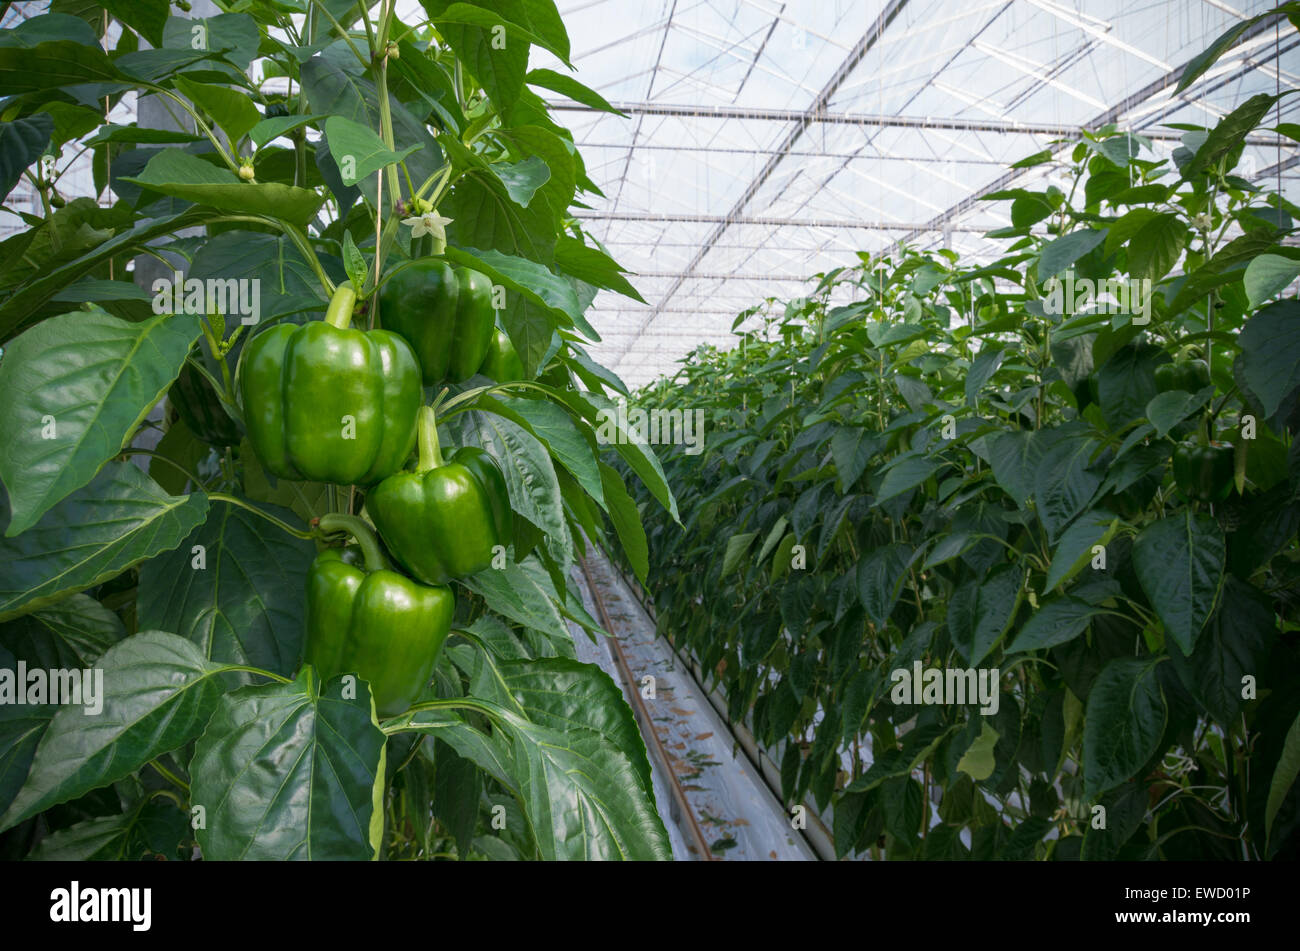 Cultivation Of Green Bell Peppers In A Commercial